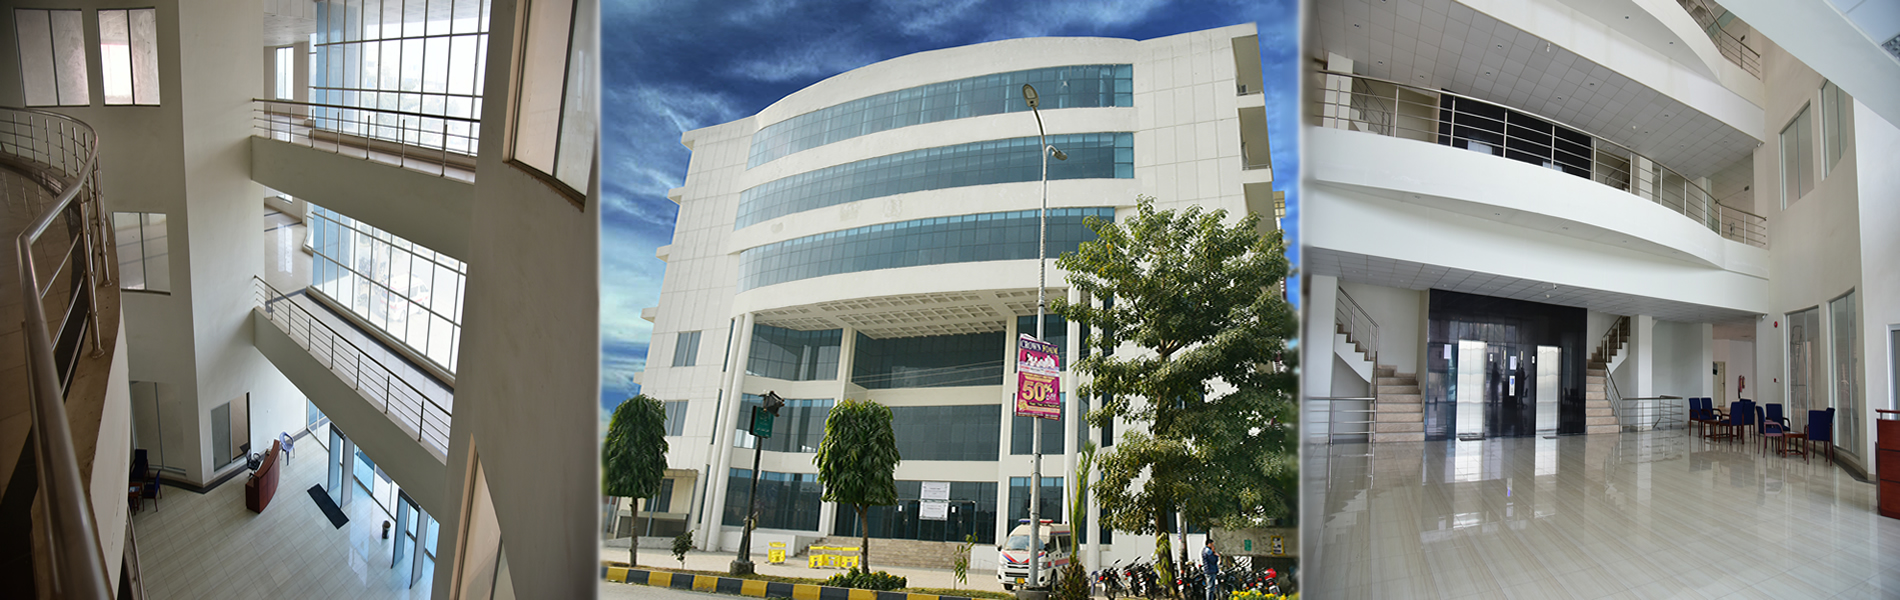 Sialkot Business and Commerce Centre